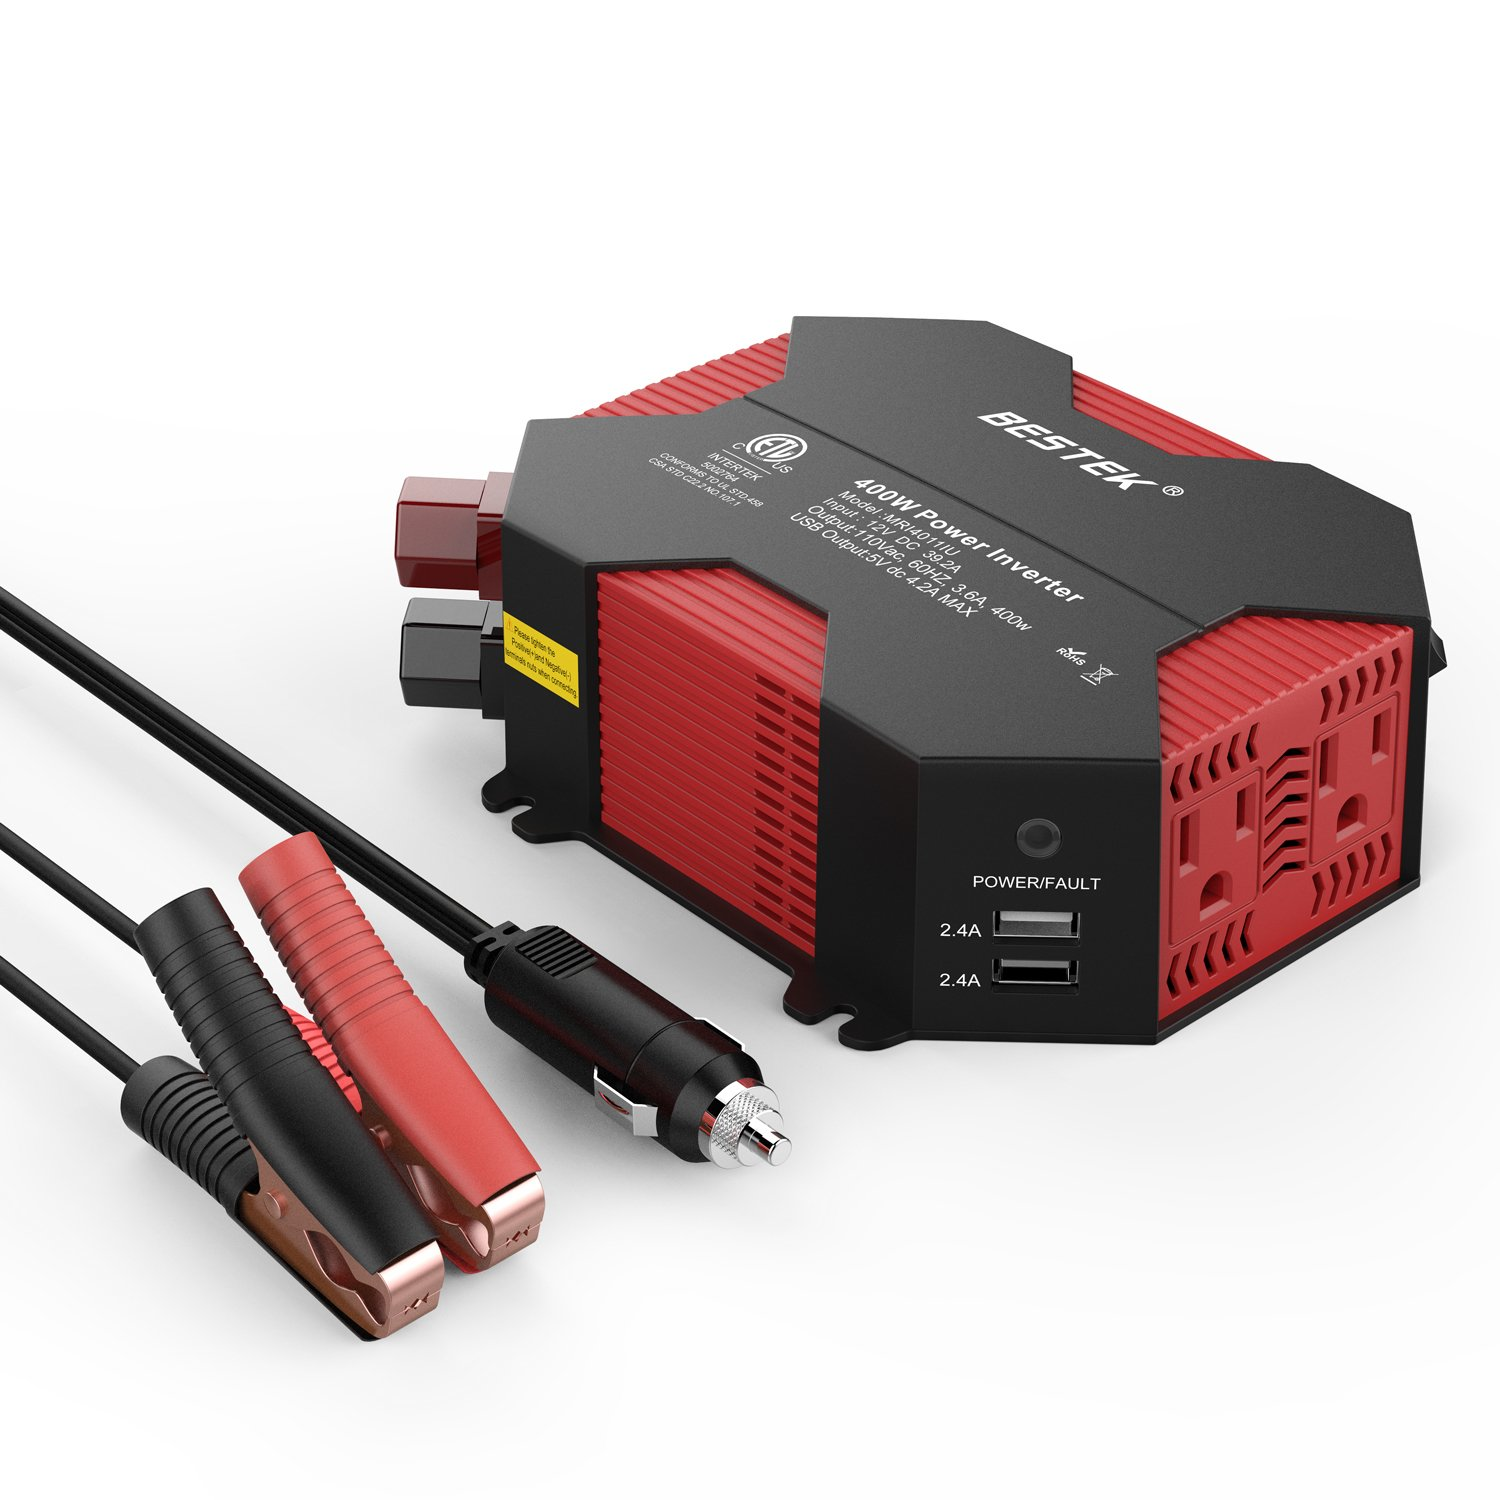 BESTEK 400W Power Inverter DC 12V to AC 110V Car Adapter with 5A 4 USB Charging Ports by BESTEK (Image #1)